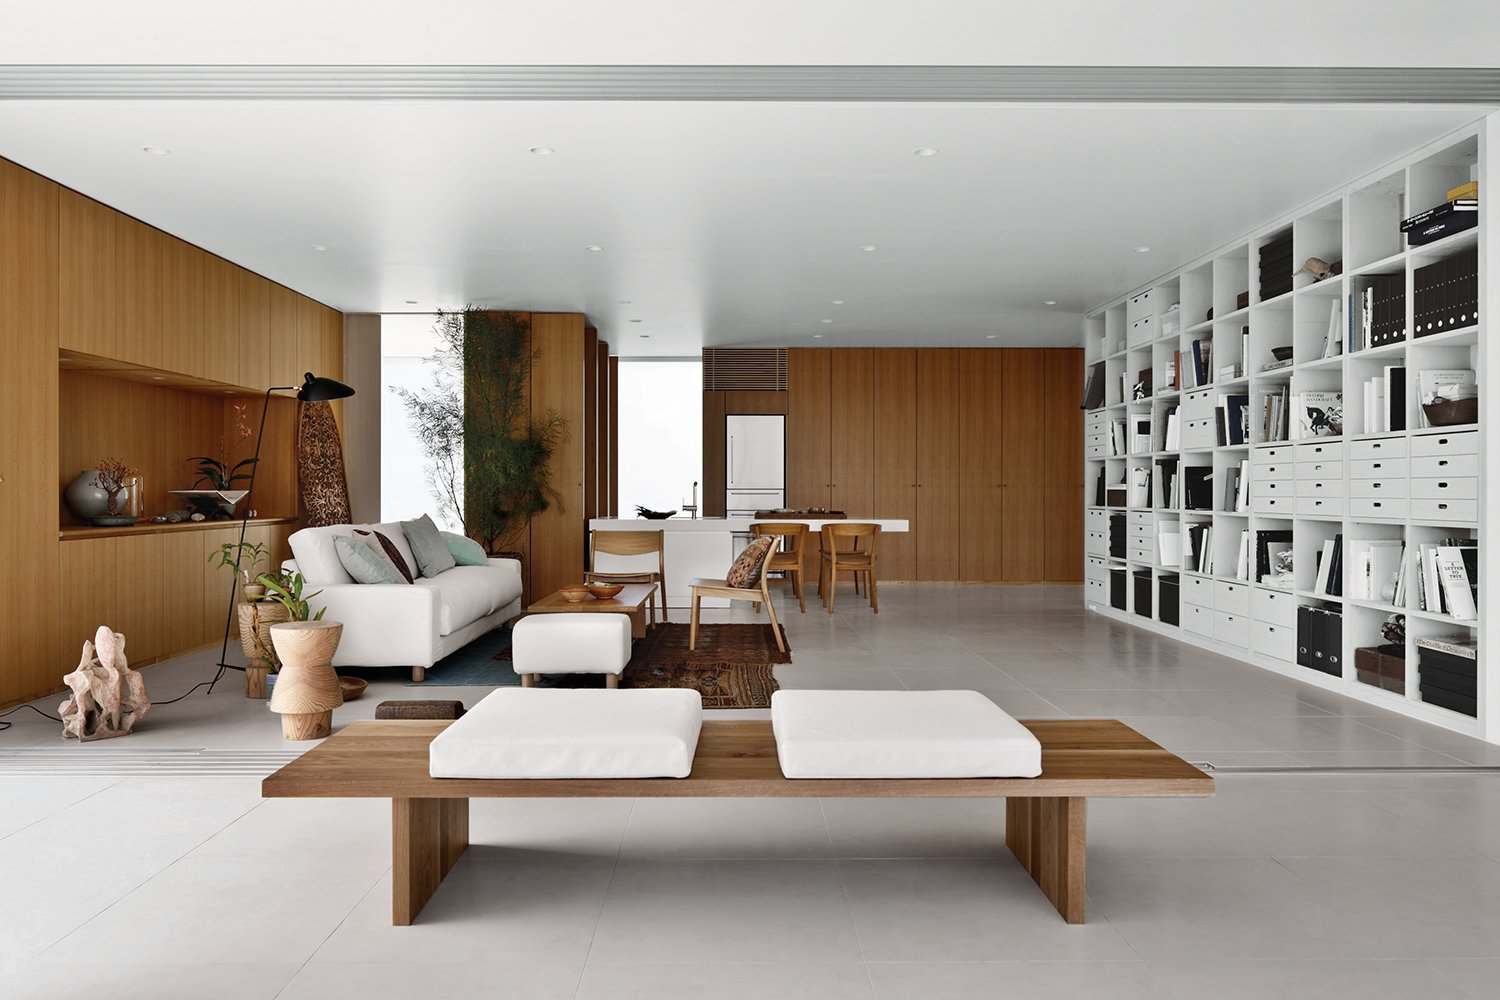 The interior is a spatially open layout with a flexible DIY storage system that supports the ceiling.  127+ Inspiring Interior Ideas from Q&A with Japanese Architect Shigeru Ban